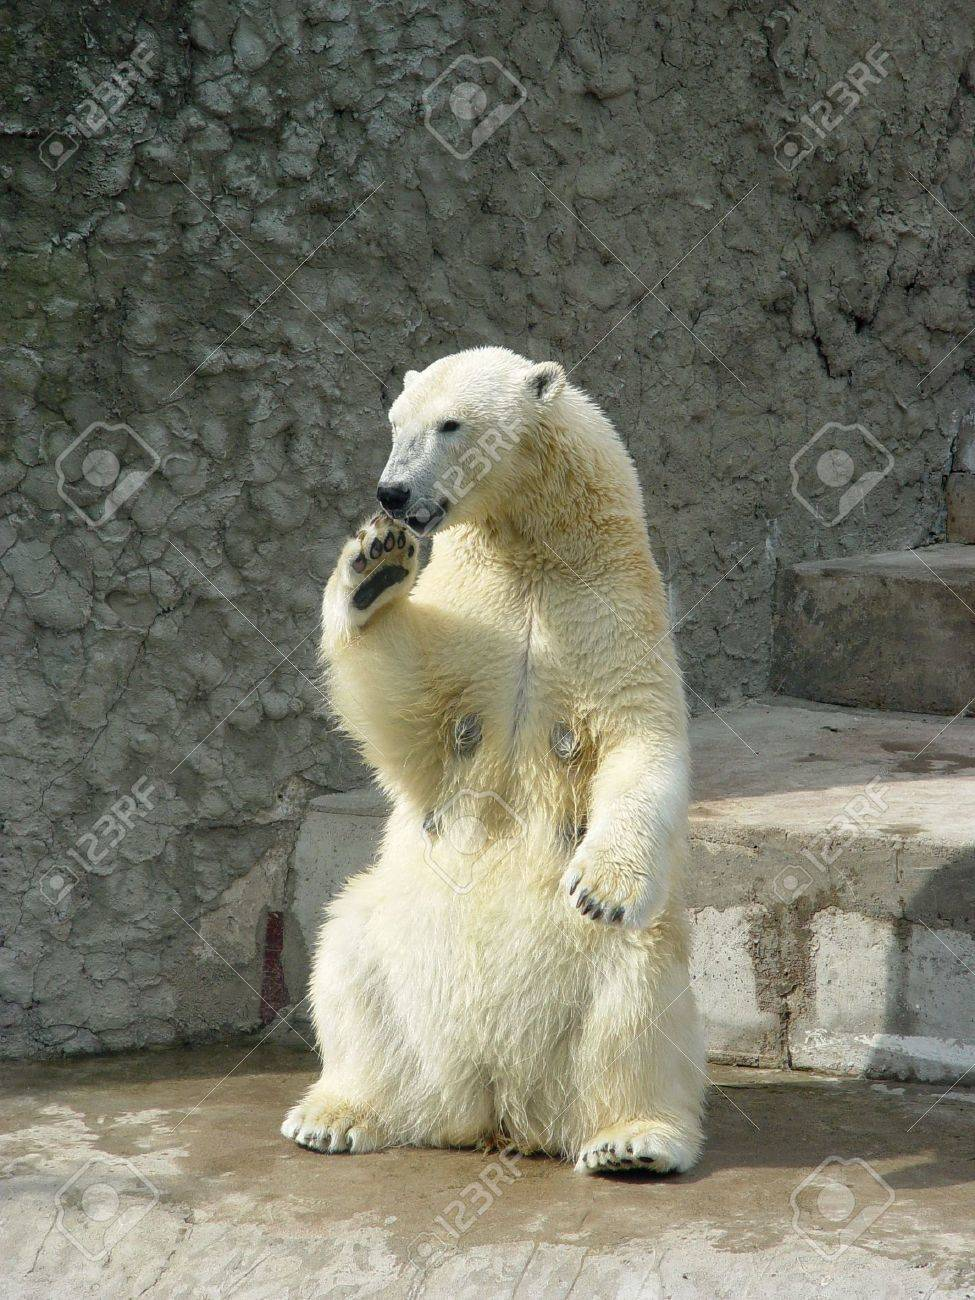 Polar she-bear standing up on the hind legs - 730426